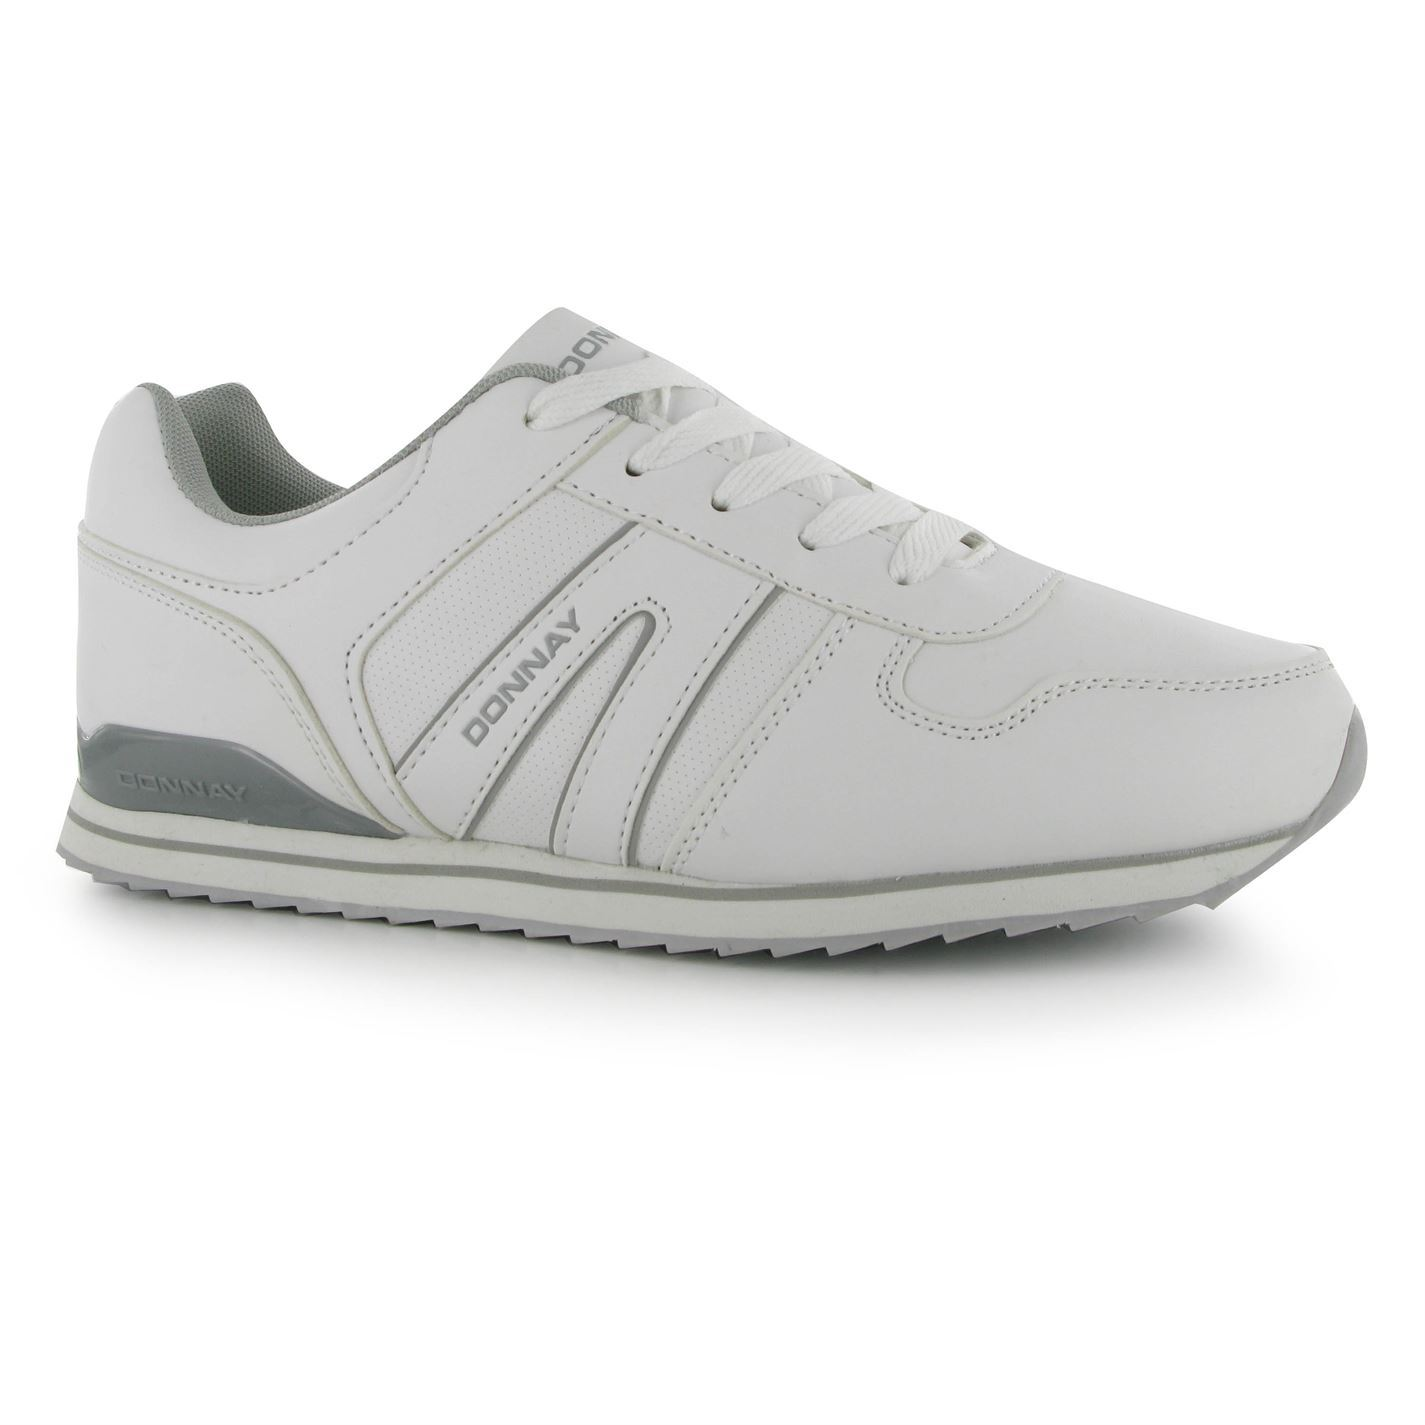 Donnay Golf Shoes